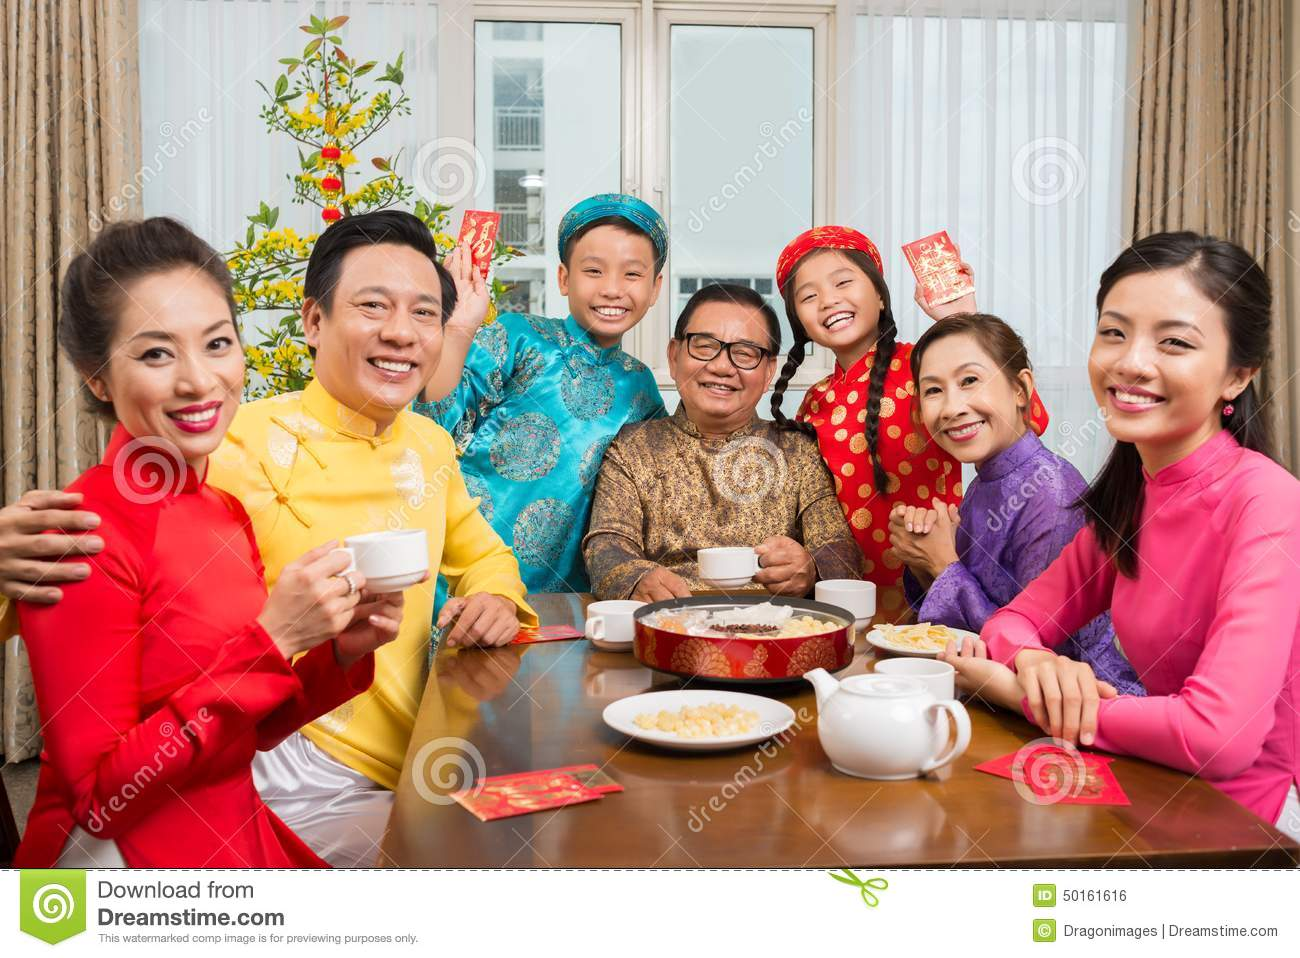 happy-big-vietnamese-family-traditional-costumes-sitting-table-looking-camera-50161616.jpg